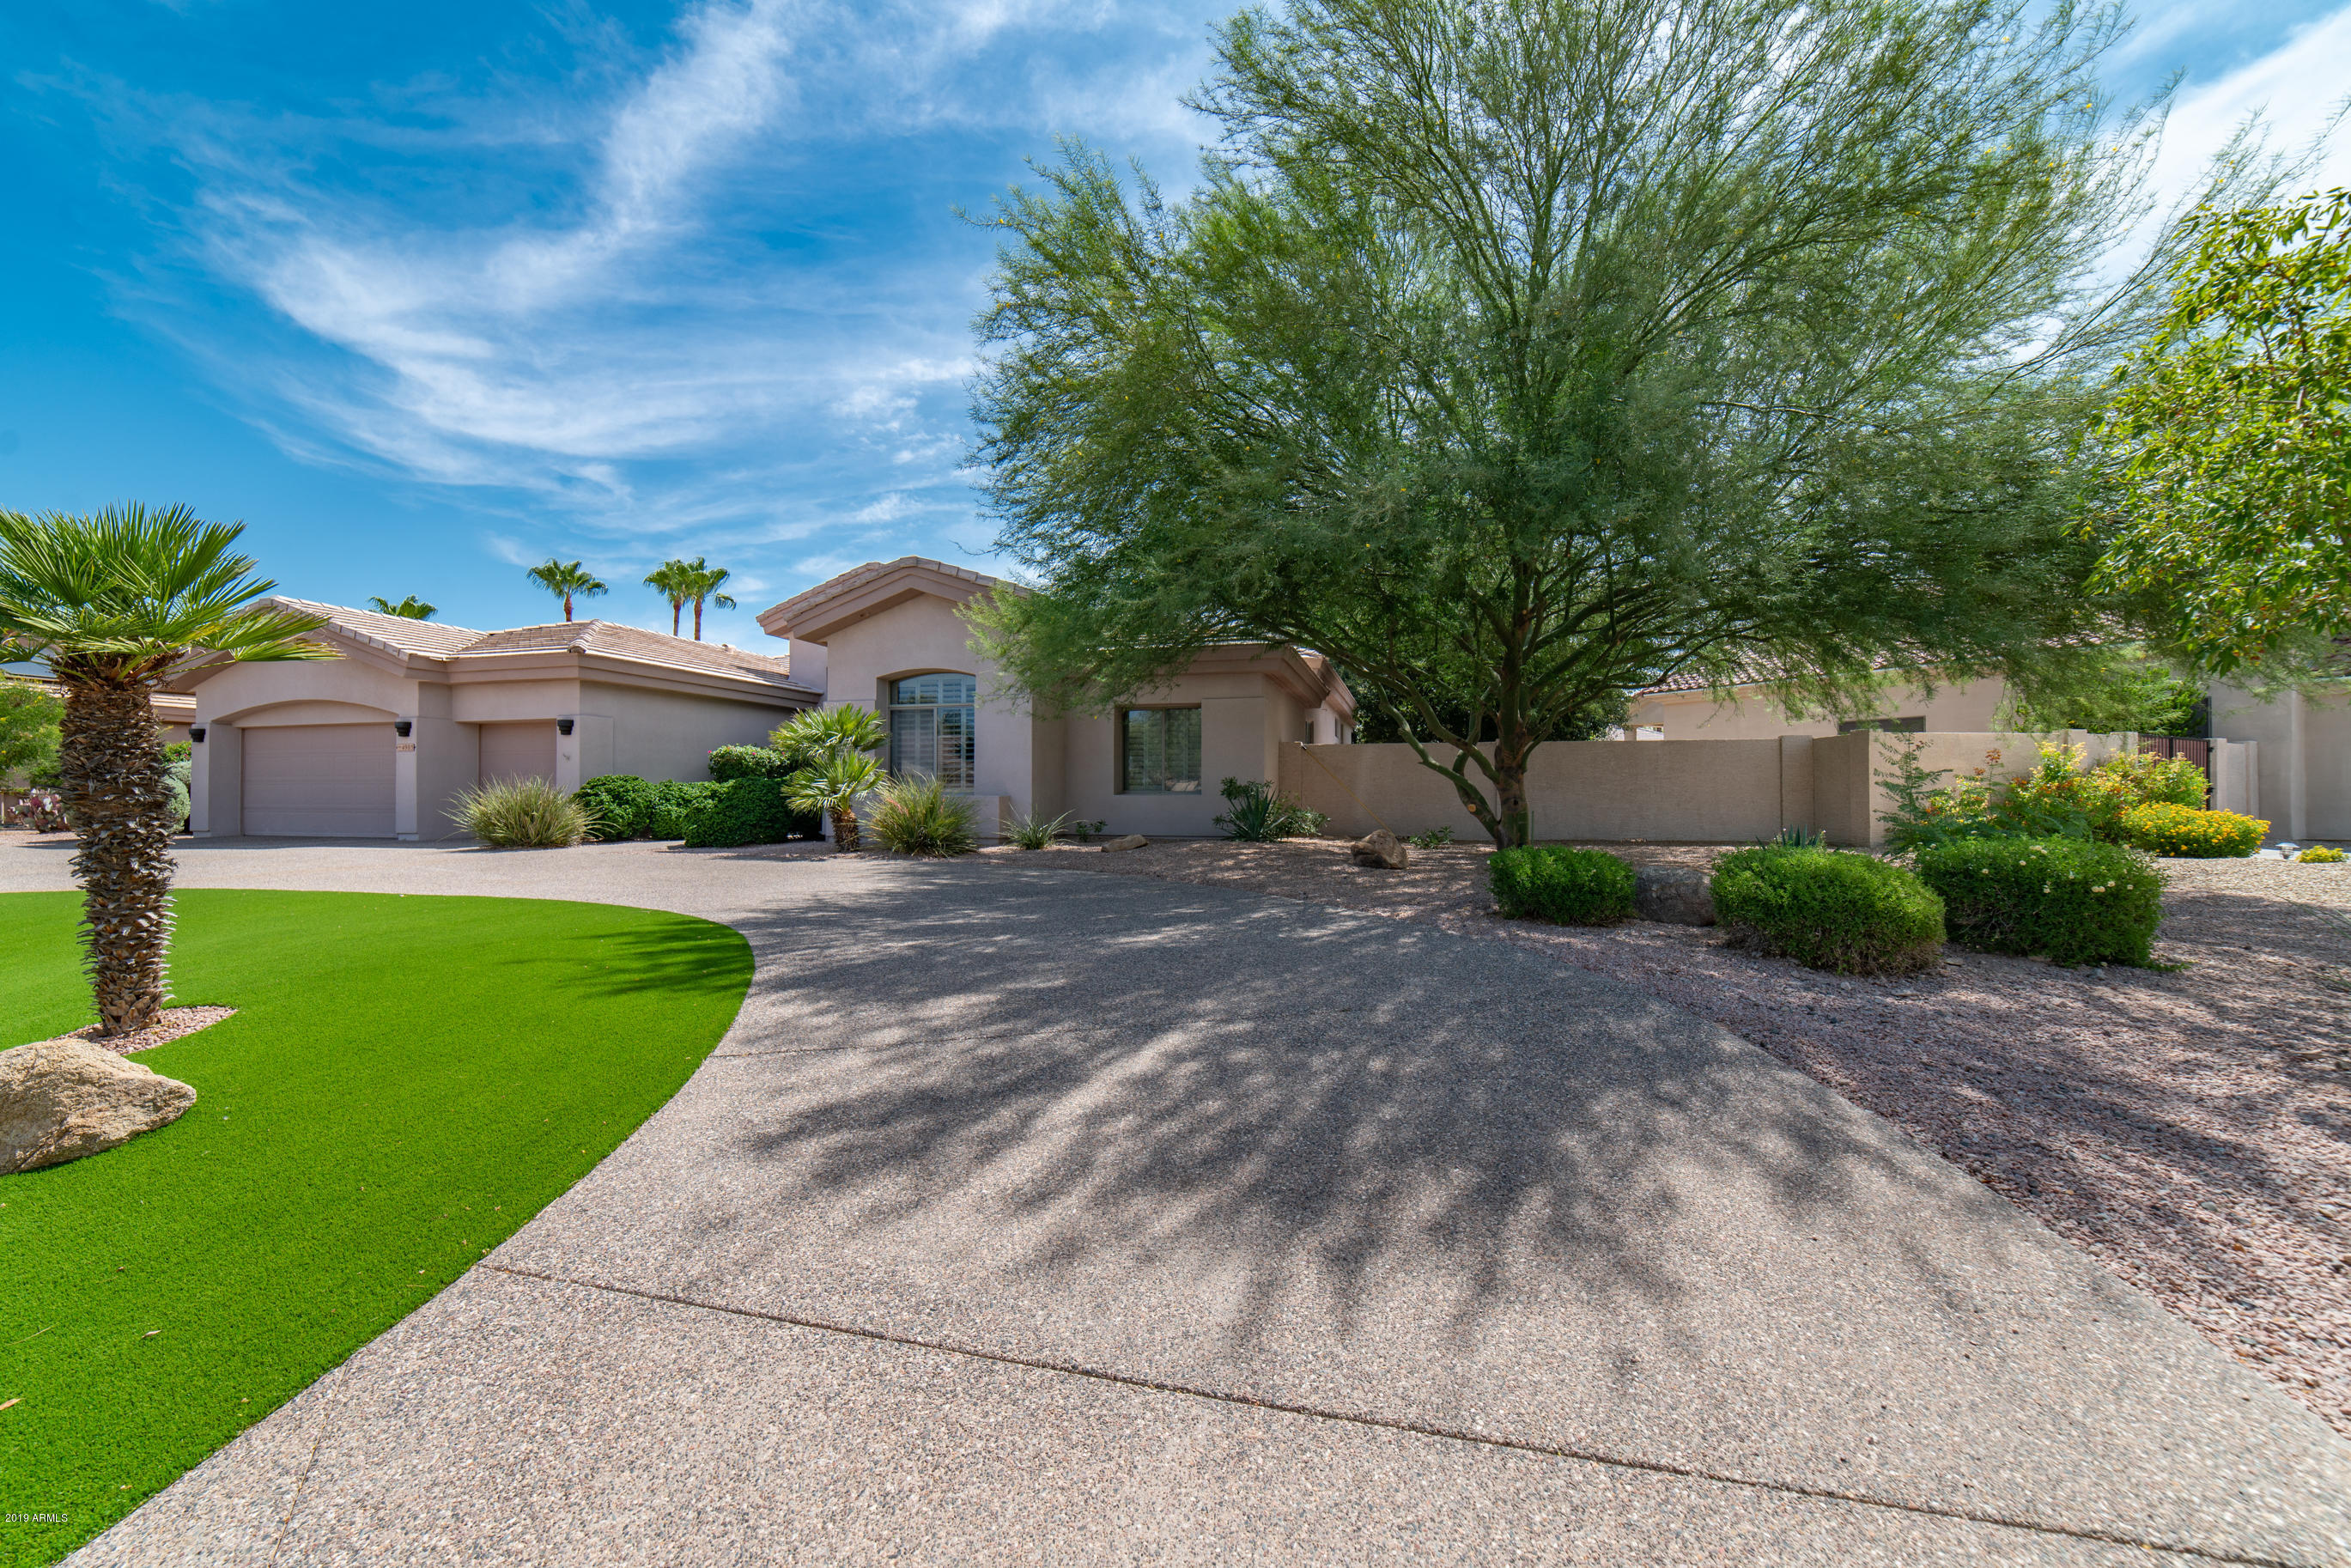 Photo of 4905 N GREENTREE Drive W, Litchfield Park, AZ 85340